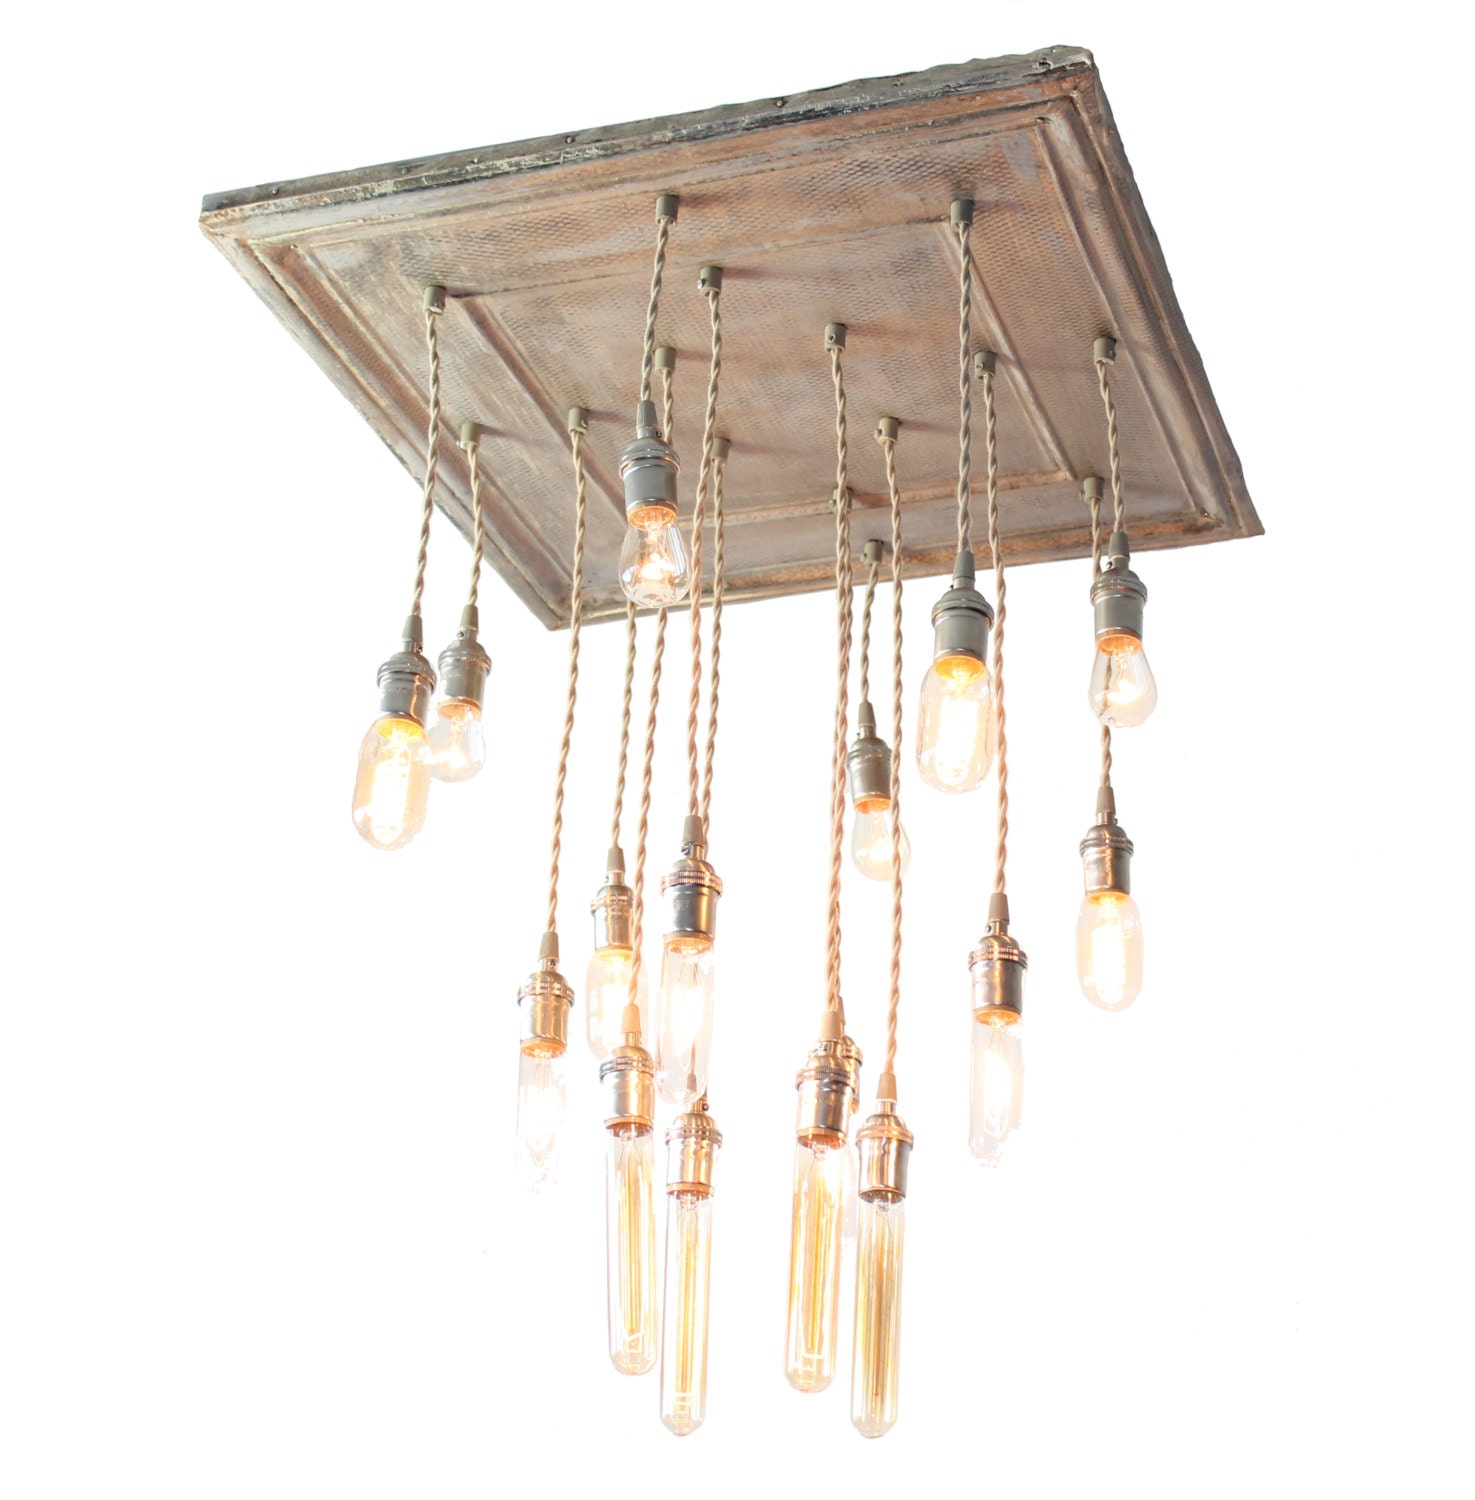 Just Reduced Rustic Handmade 3 Bulb Hanging Light Fixture Or: Salvaged Barn Tin Repurposed Into Chandelier With By